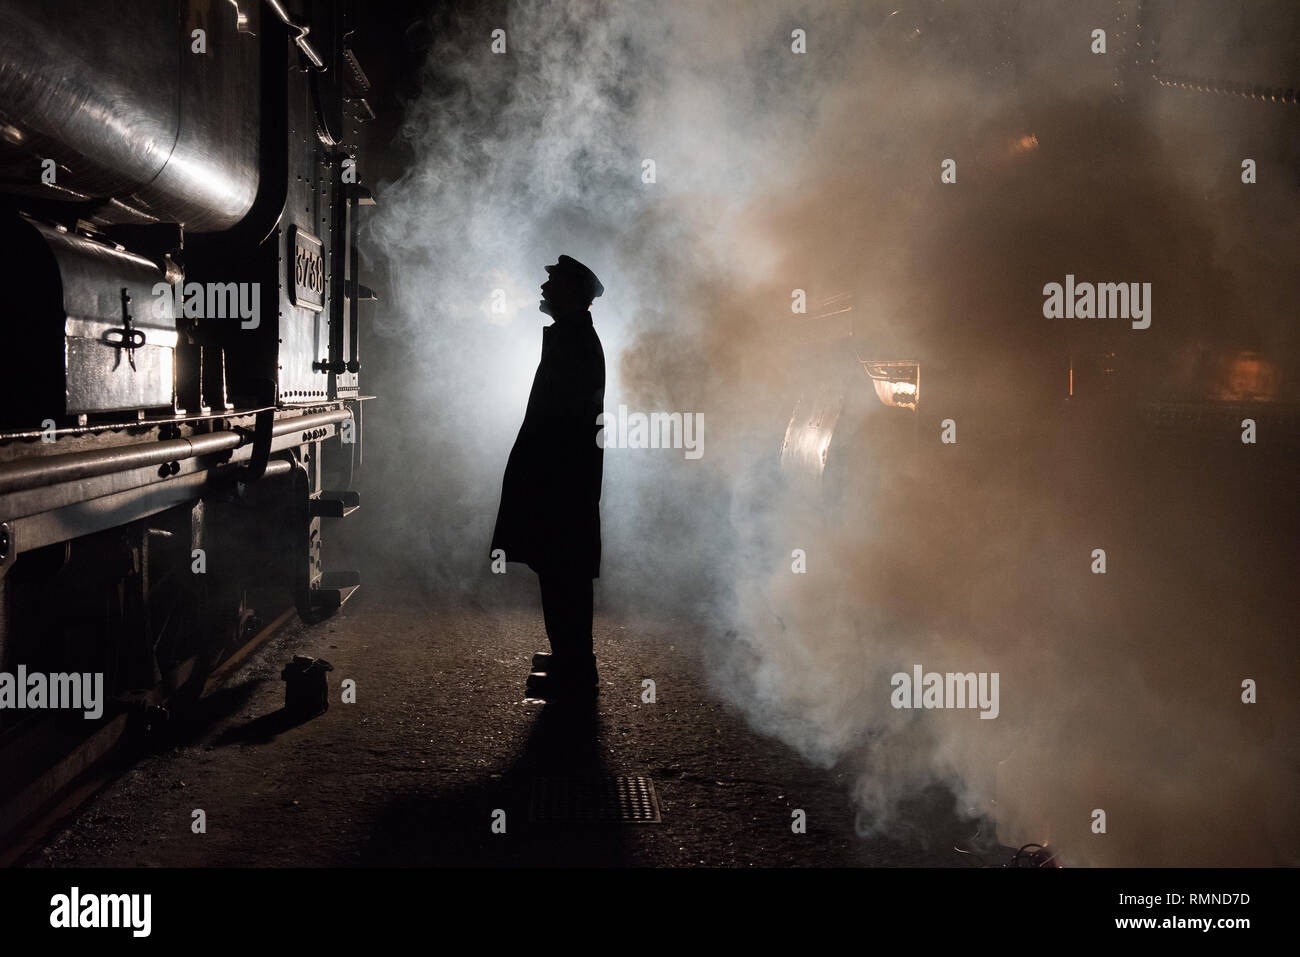 Cold Winter's Evening in a Train Shed - Stock Image